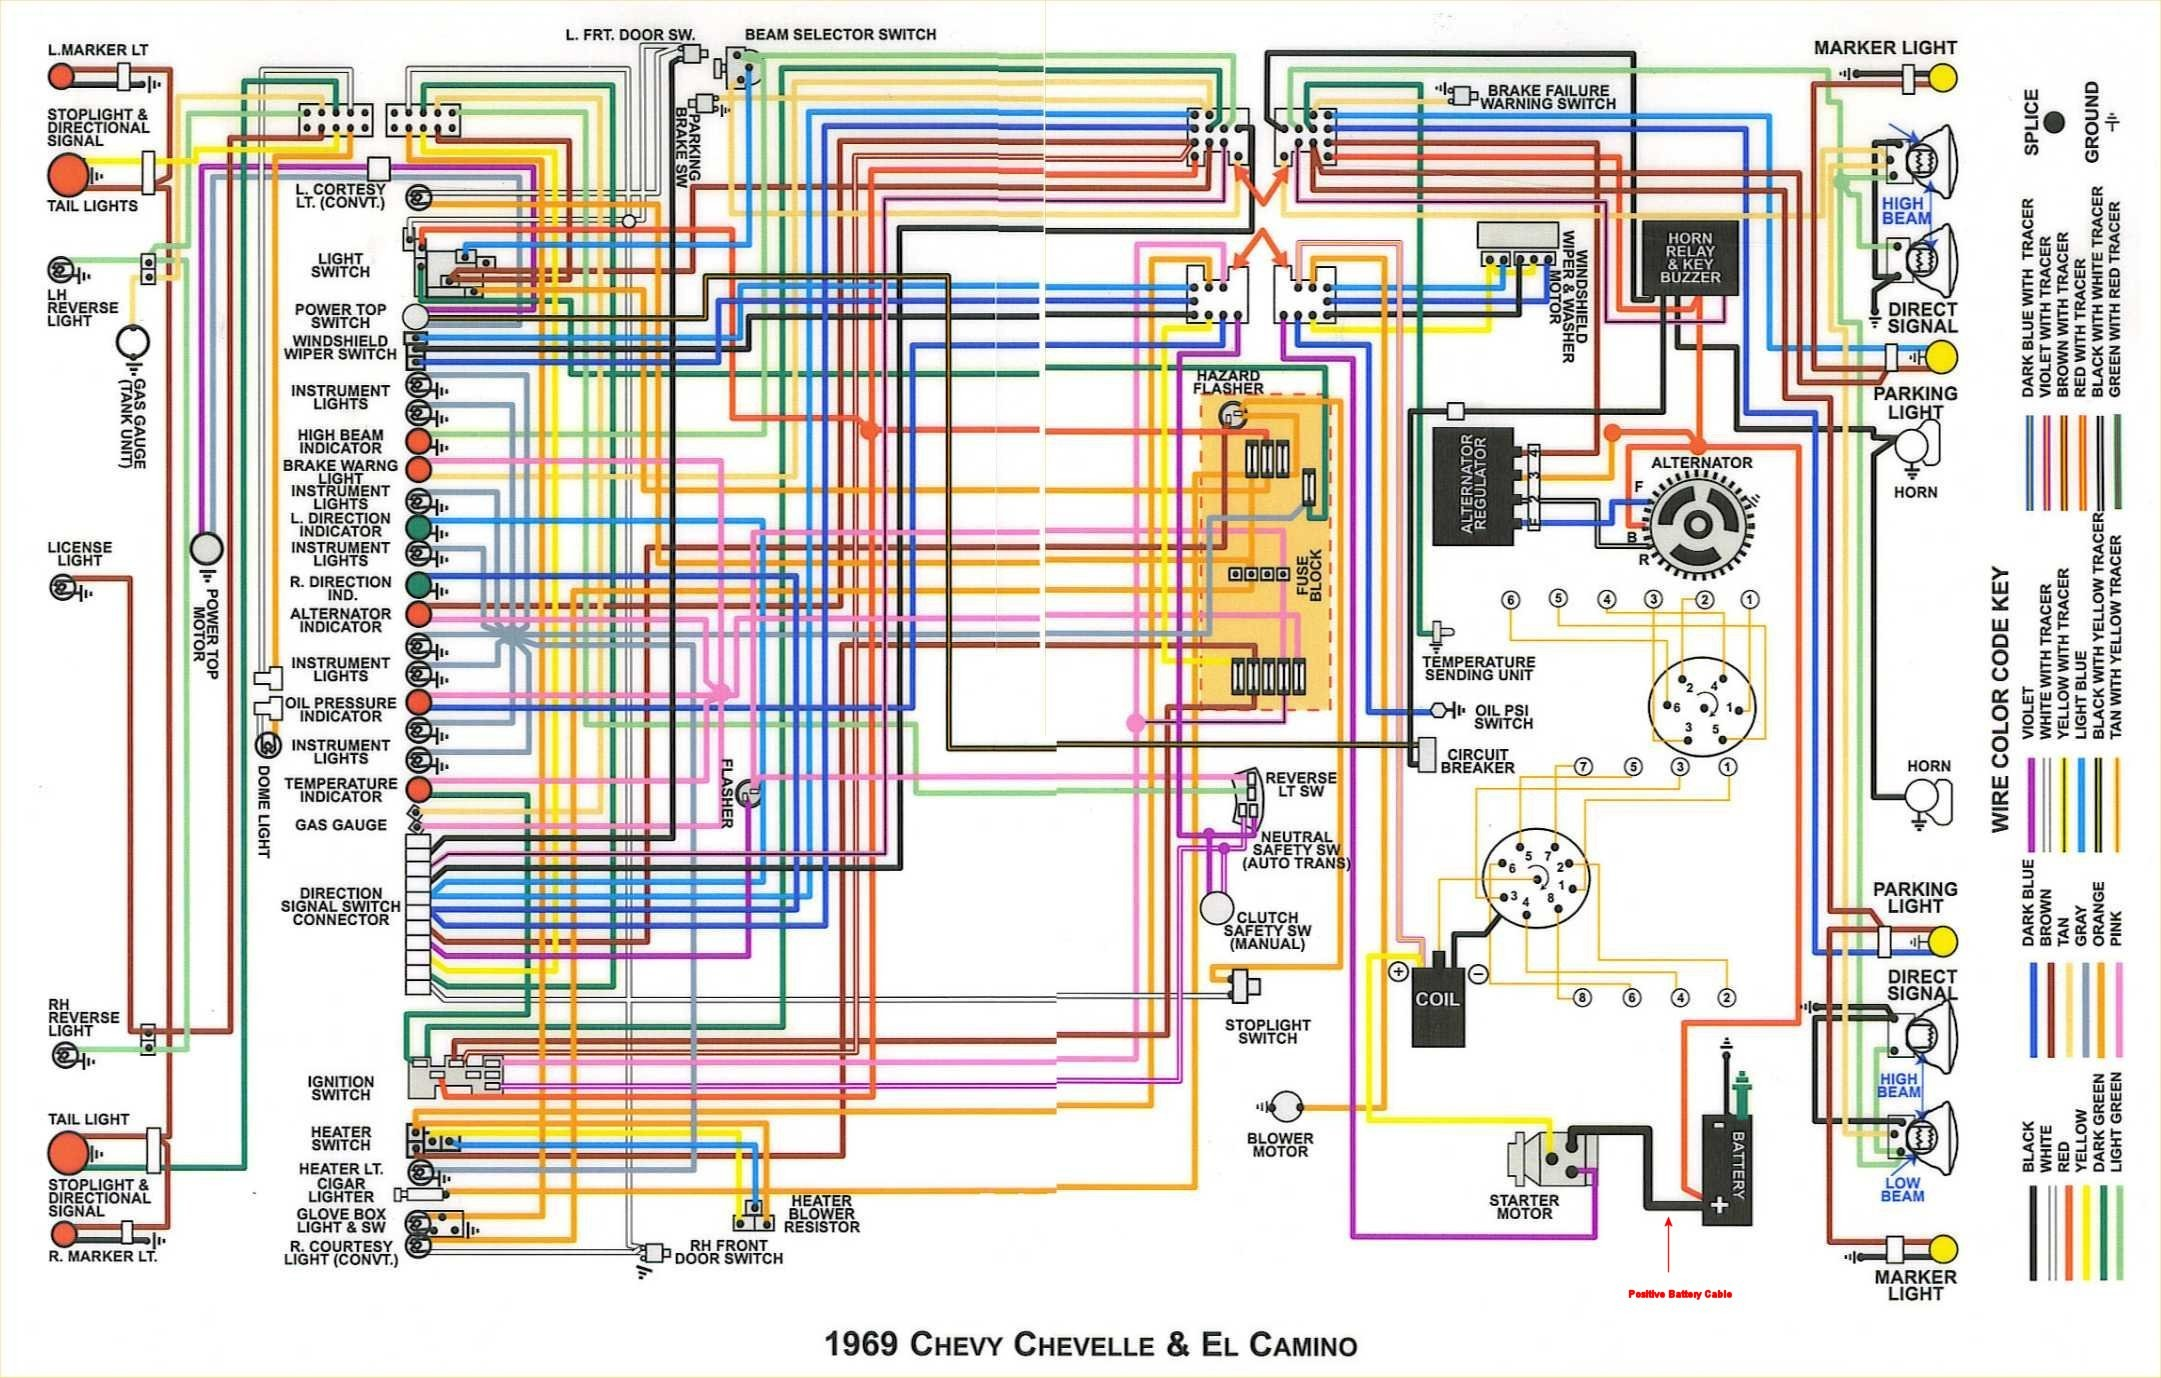 1968 Chevelle Fuel Gauge Wiring Diagram Fuel Pump & Relay Diagram \u2022  1970 Chevelle Wiring Schematic 67 Chevelle Gas Gauge Wiring Diagram